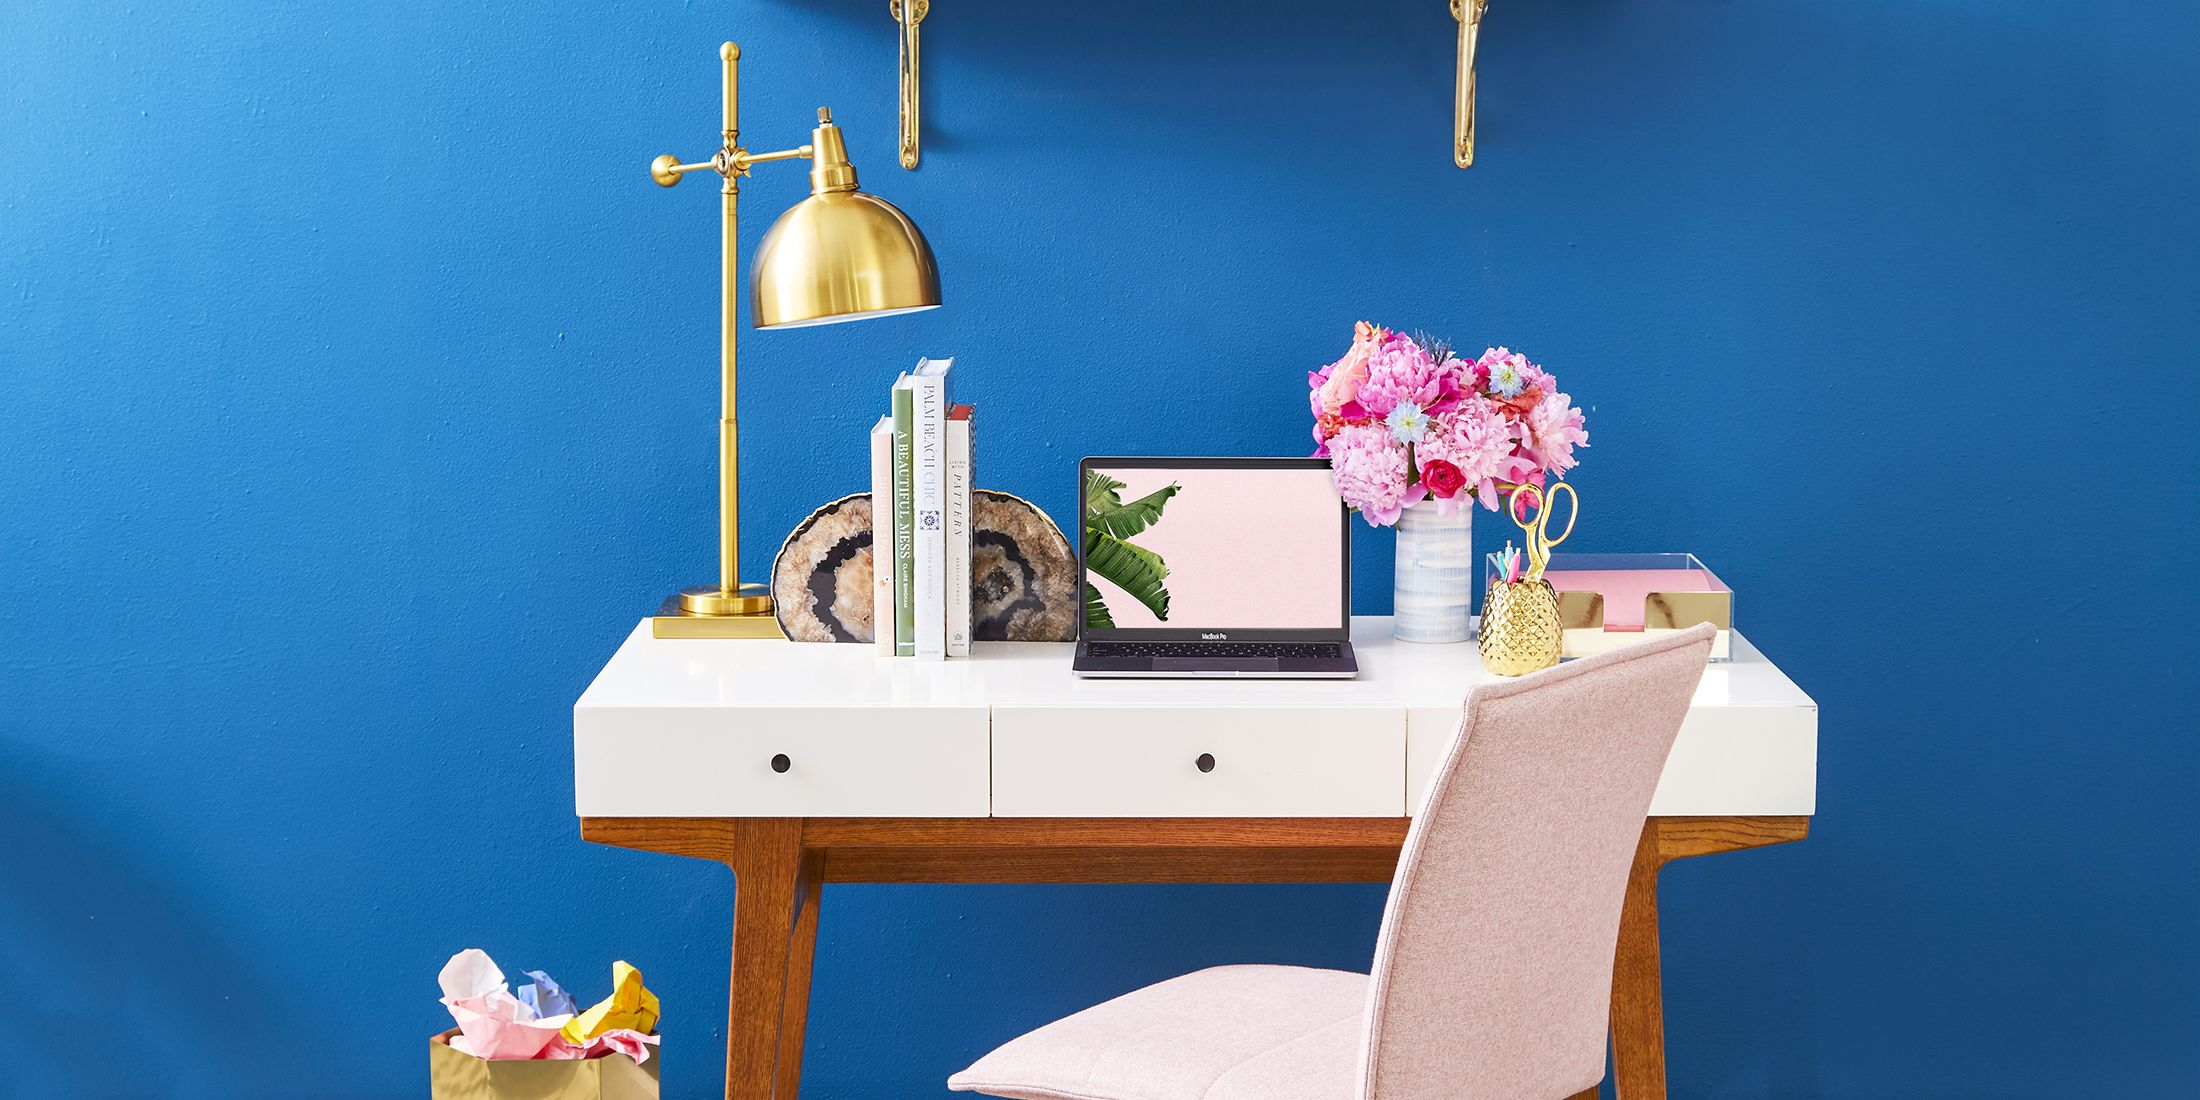 16 Home Office Ideas That'll Motivate You to Work in Style